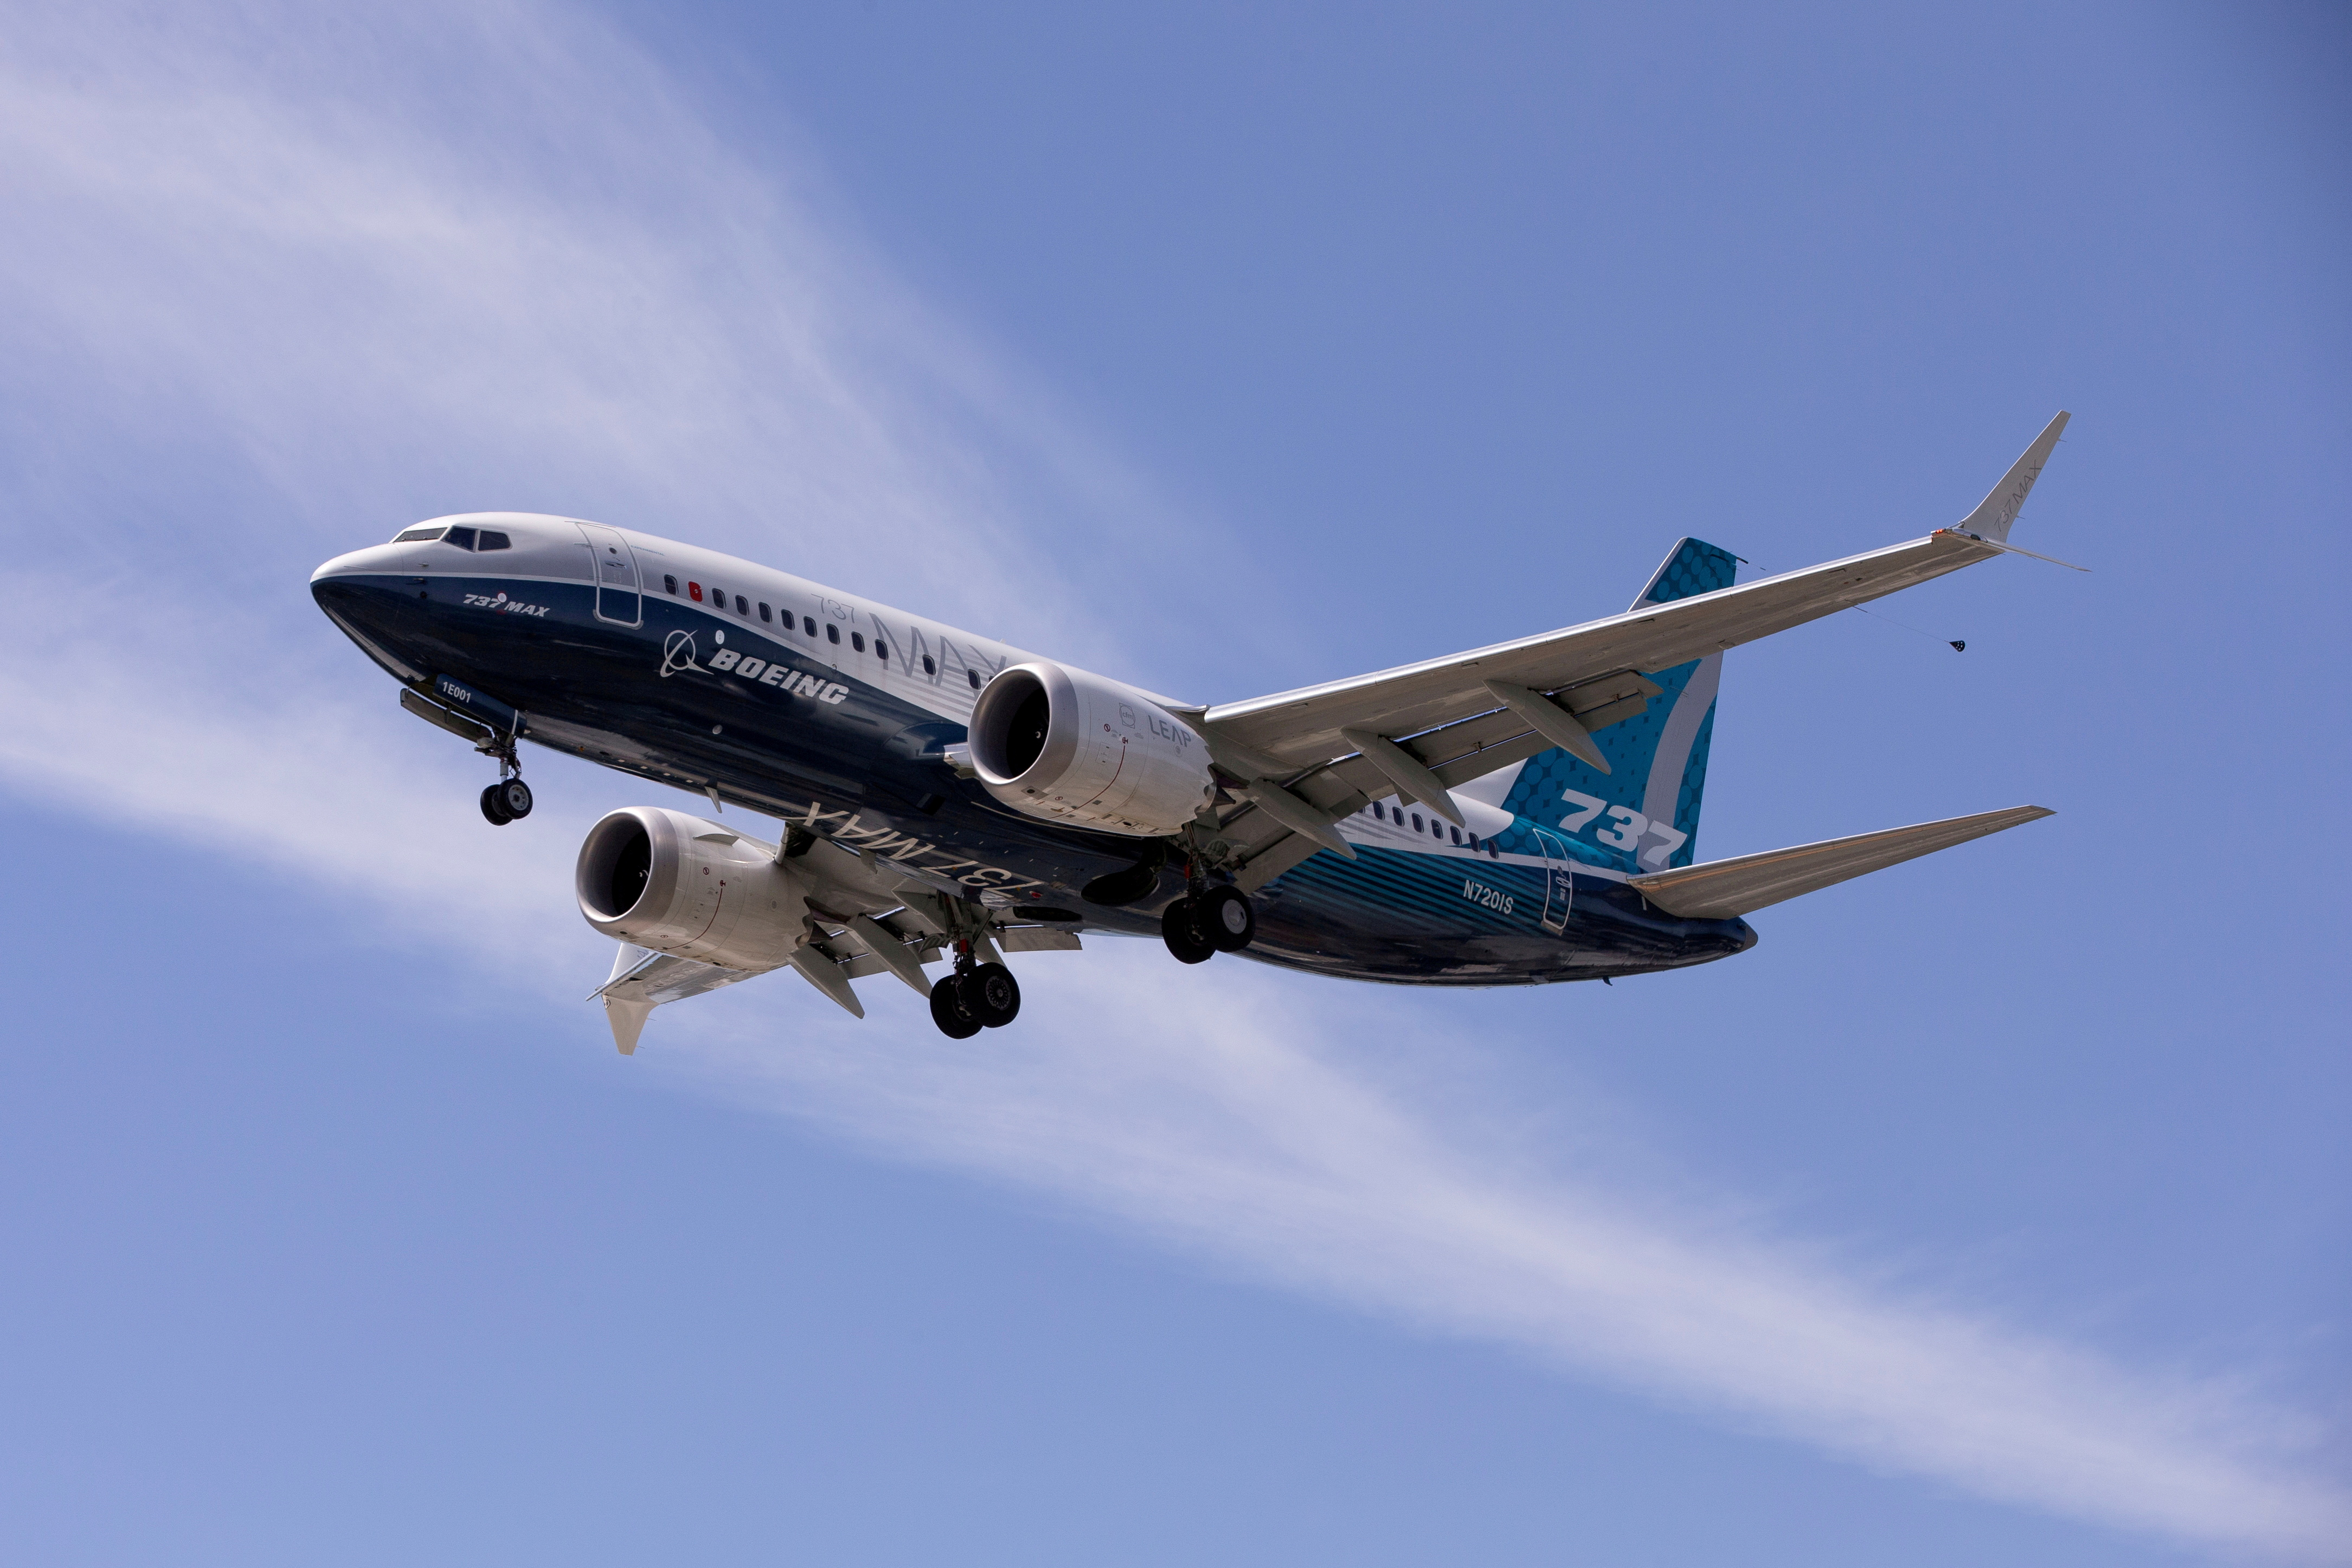 A Boeing 737 MAX airplane lands after a test flight at Boeing Field in Seattle, Washington, U.S. June 29, 2020. REUTERS/Karen Ducey/File Photo/File Photo